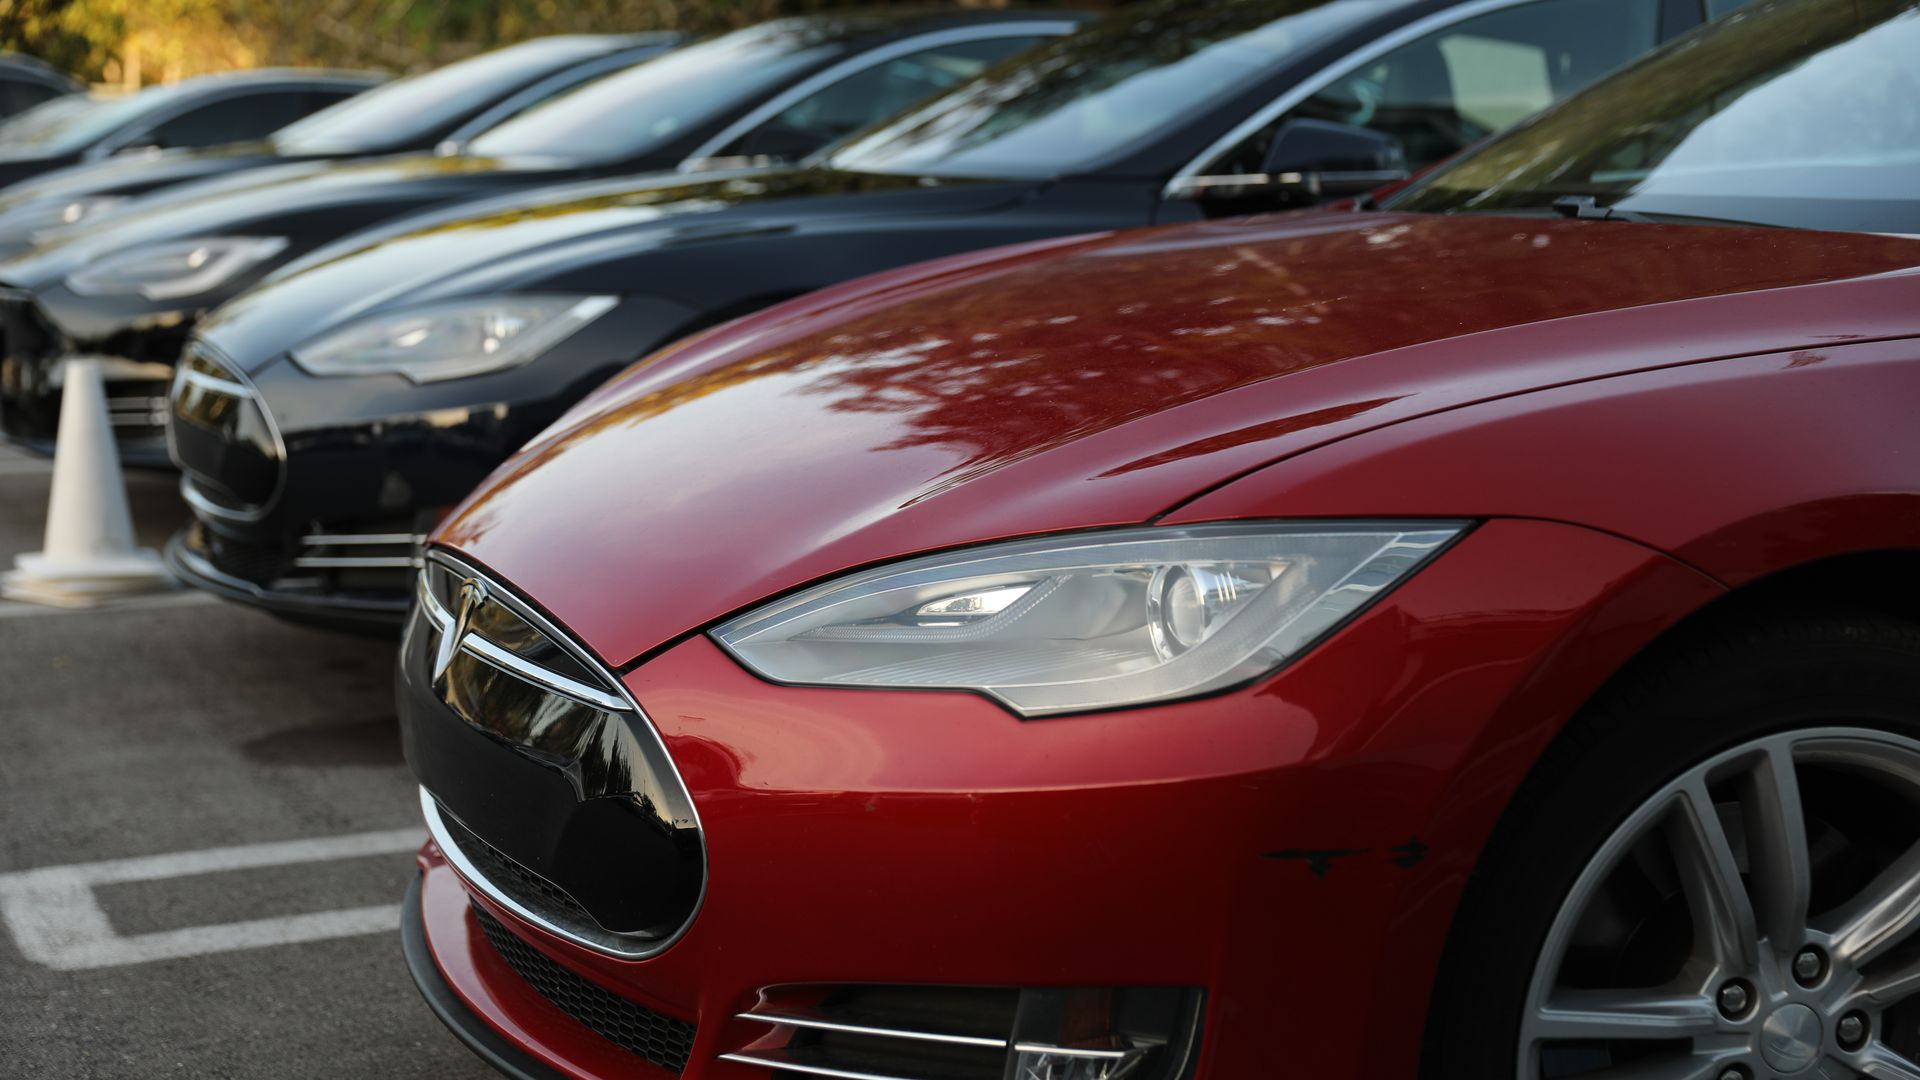 Photograph of a row of new Teslas at a dealership